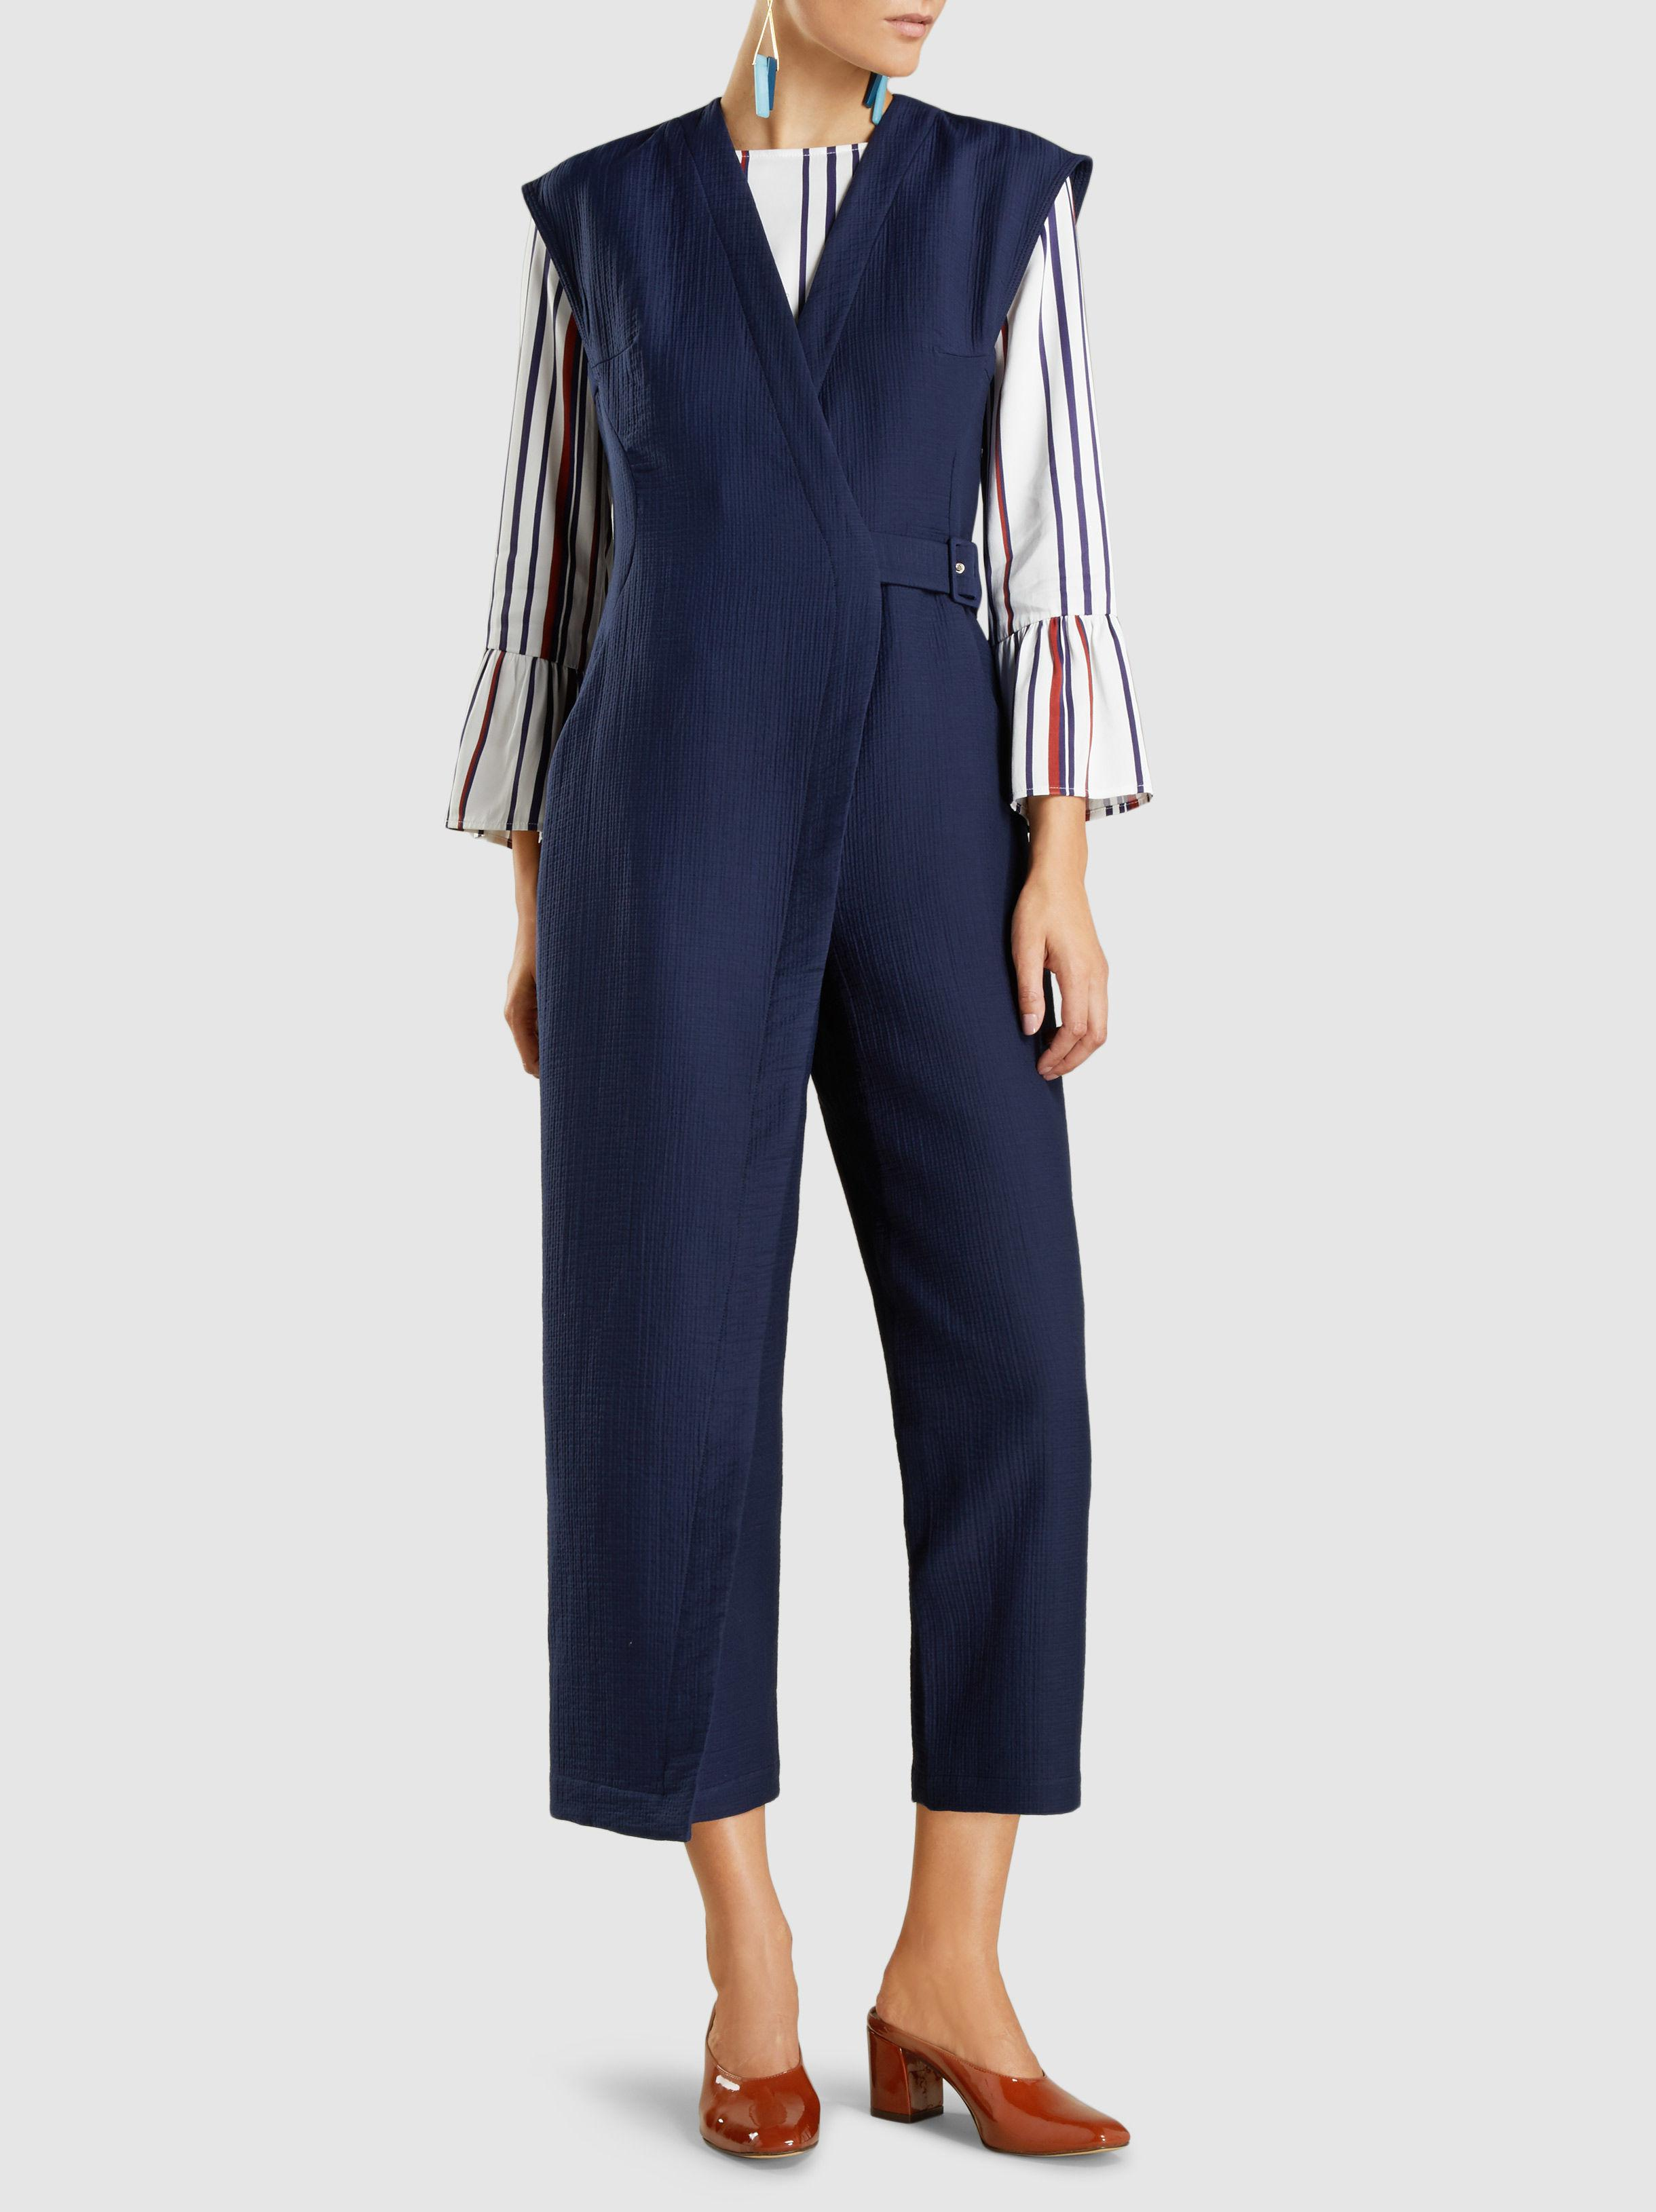 Clearance With Paypal Steadfast Cotton-Blend Jumpsuit Rachel Comey Cheap Online Clearance Discounts Amazing Price Cheap Price xPaIRW